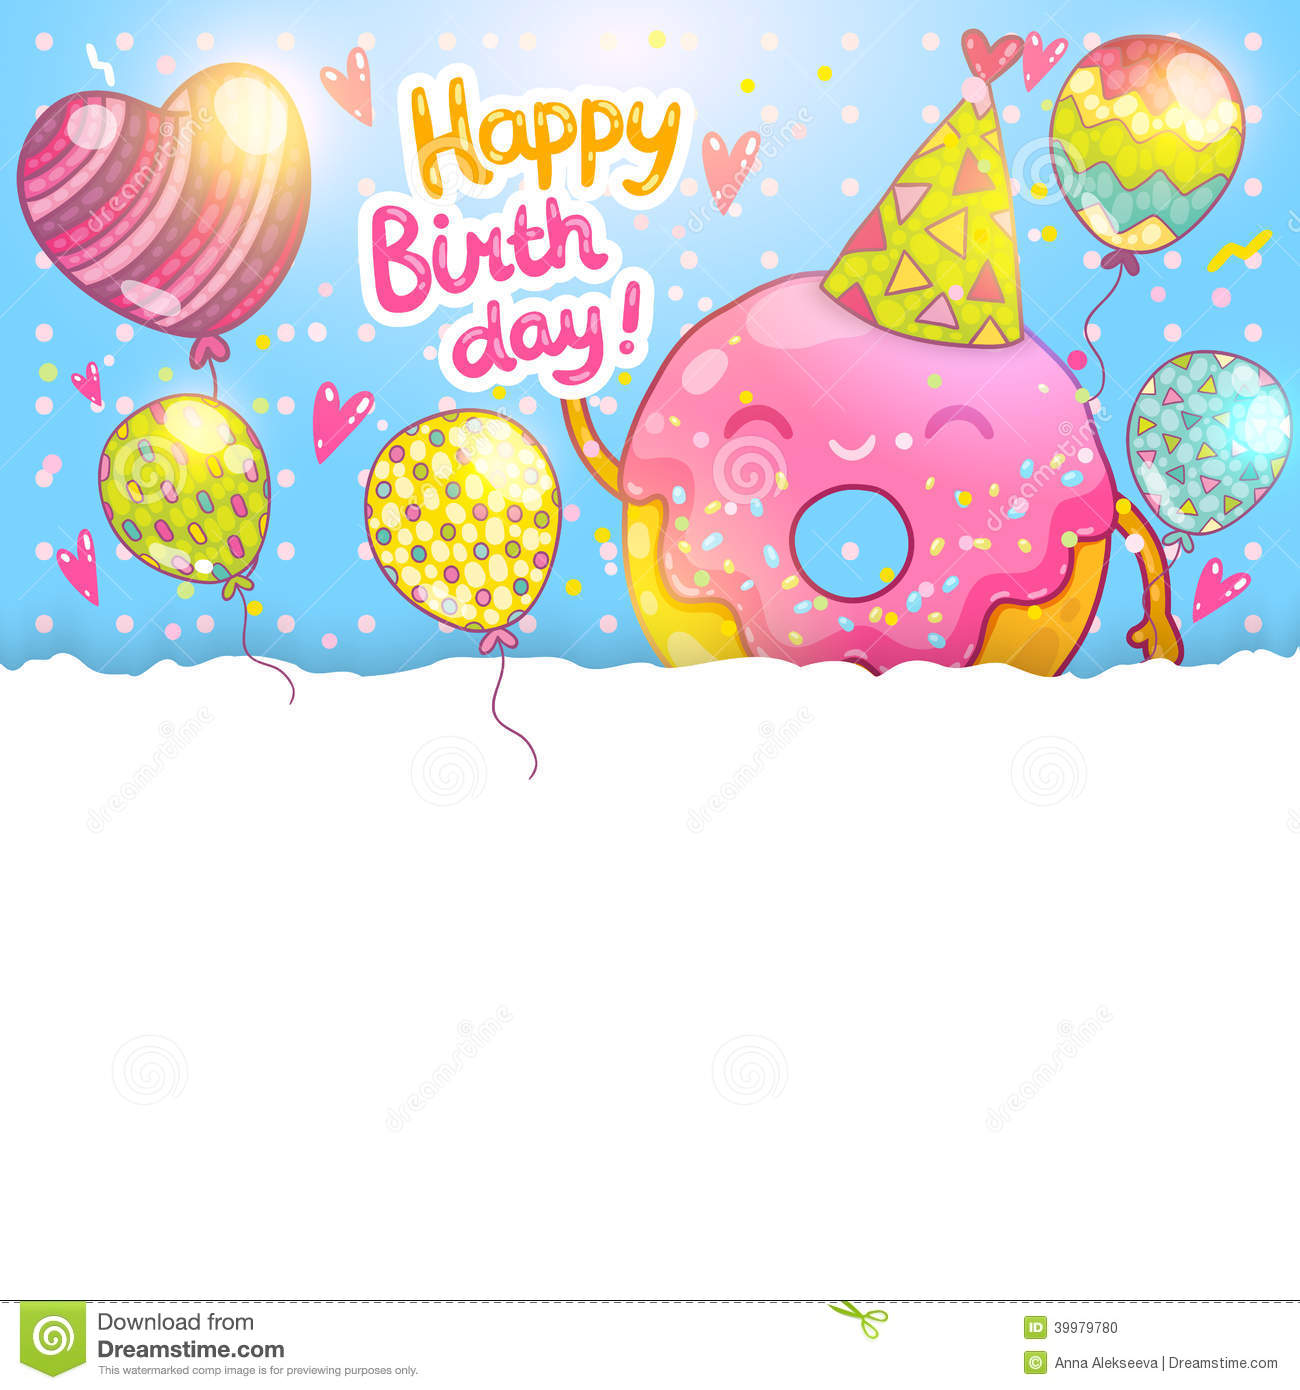 Happy Birthday Card Background With Cute Donut. Stock ...